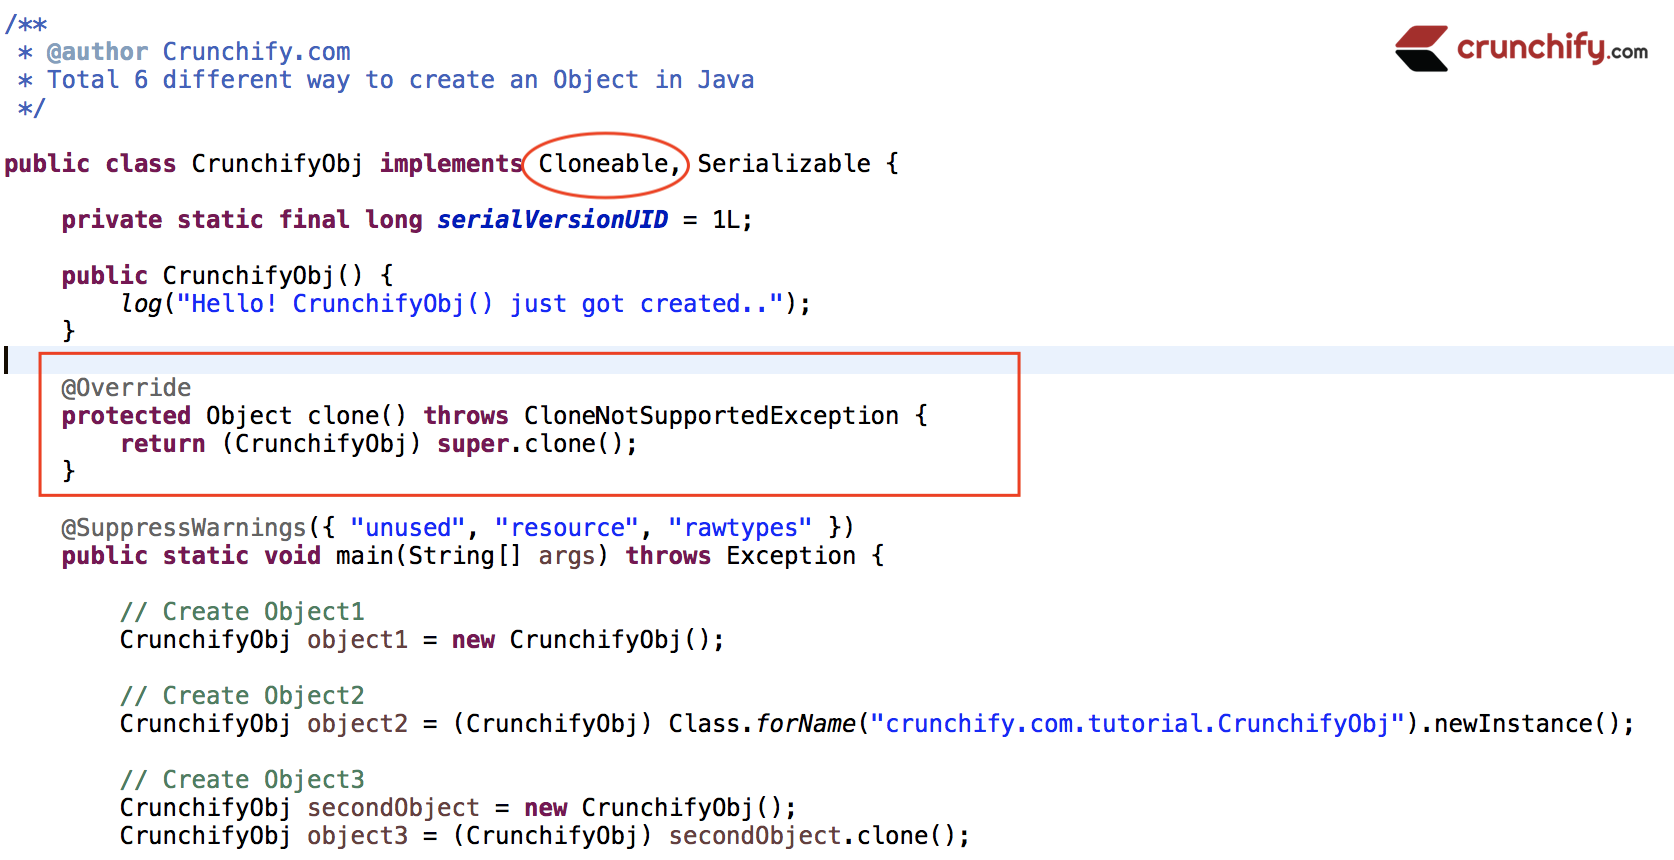 How to fix Exception in thread main - java.lang.CloneNotSupportedException